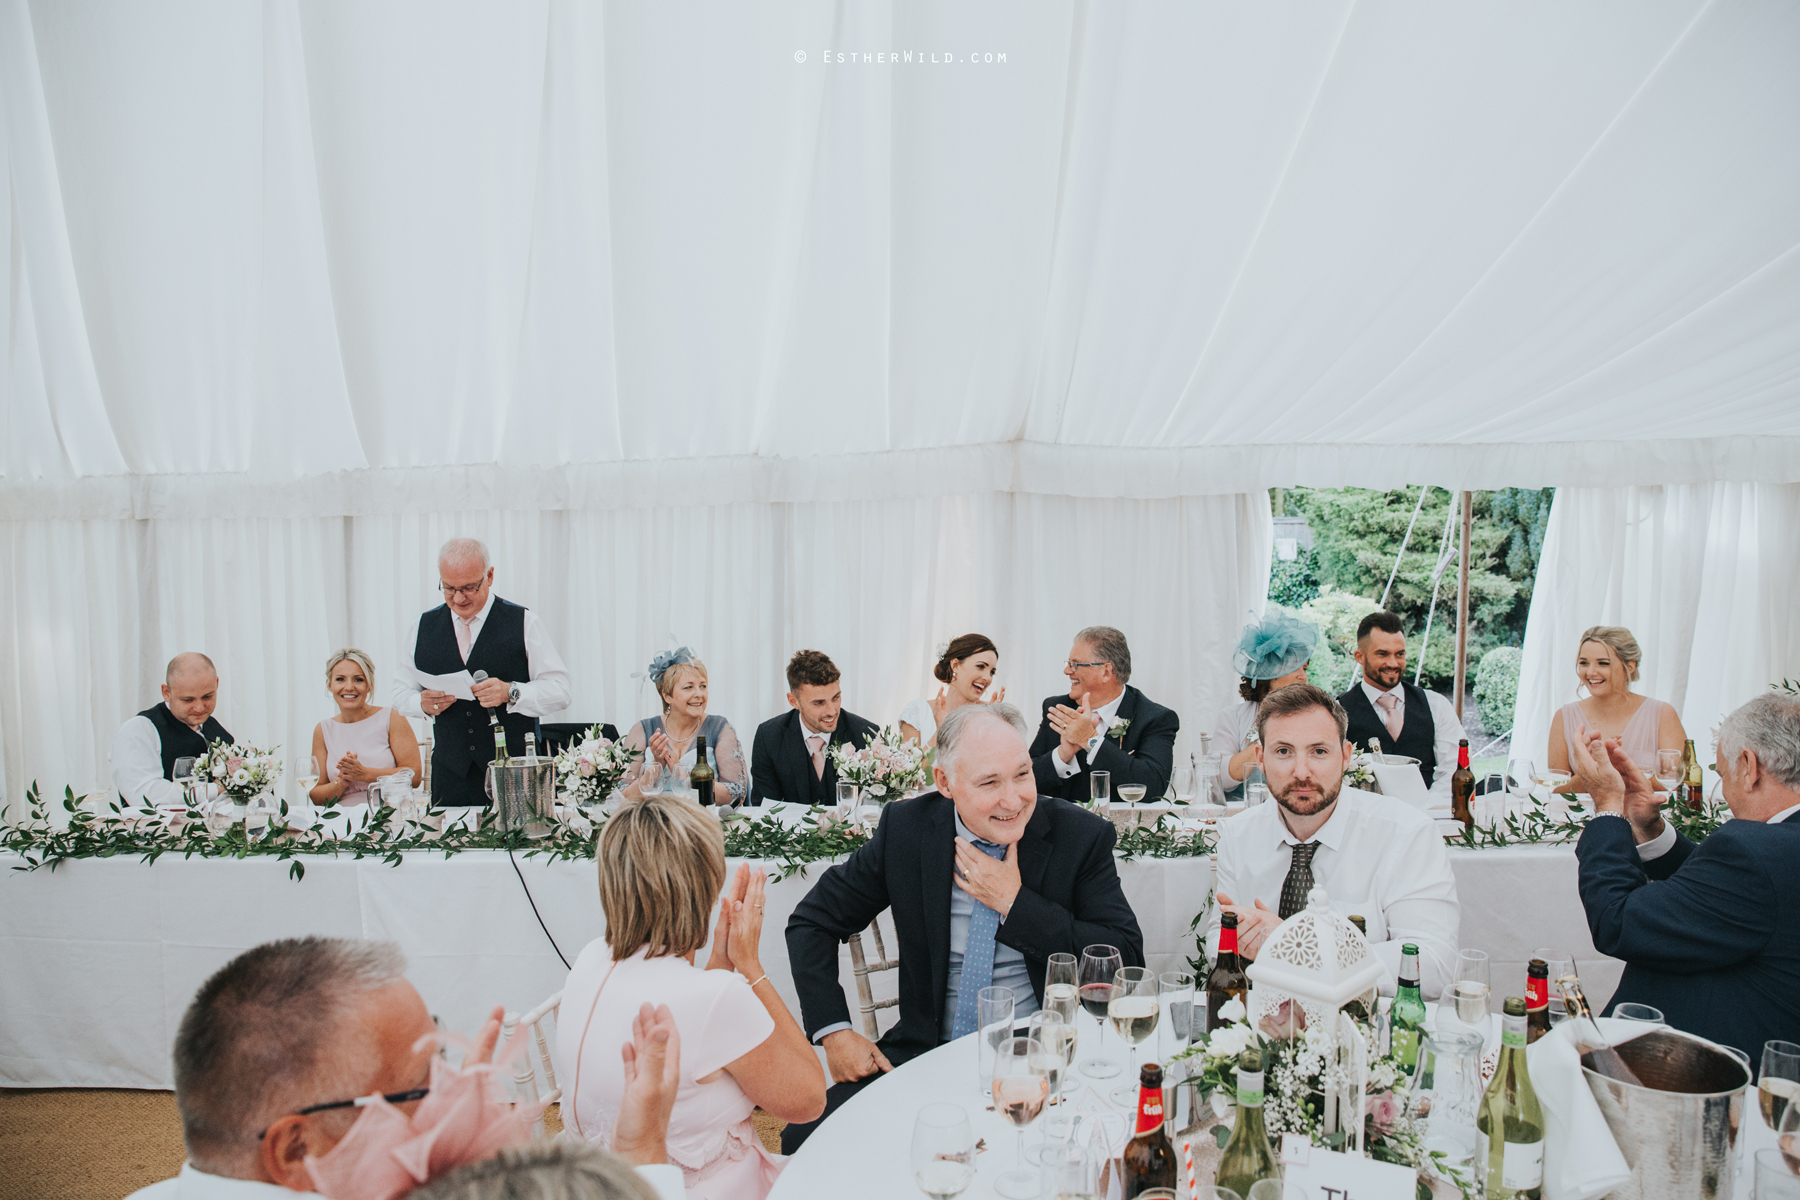 Wootton_Wedding_Copyright_Esther_Wild_Photographer_IMG_2433.jpg